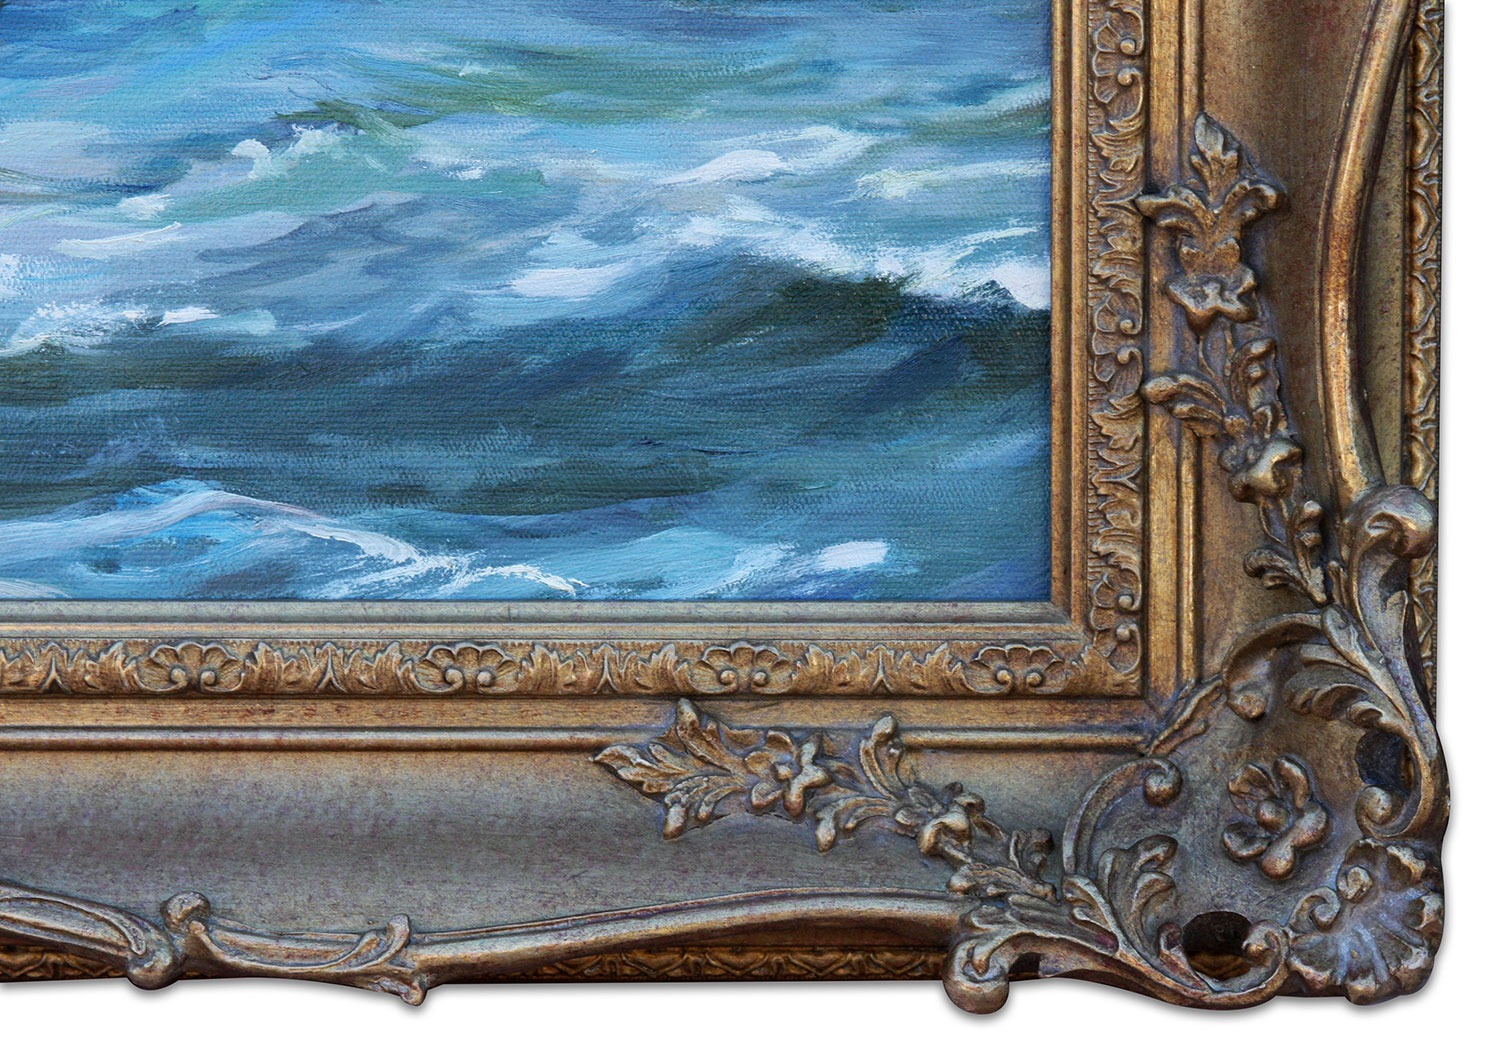 The Sapphire framed oil painting